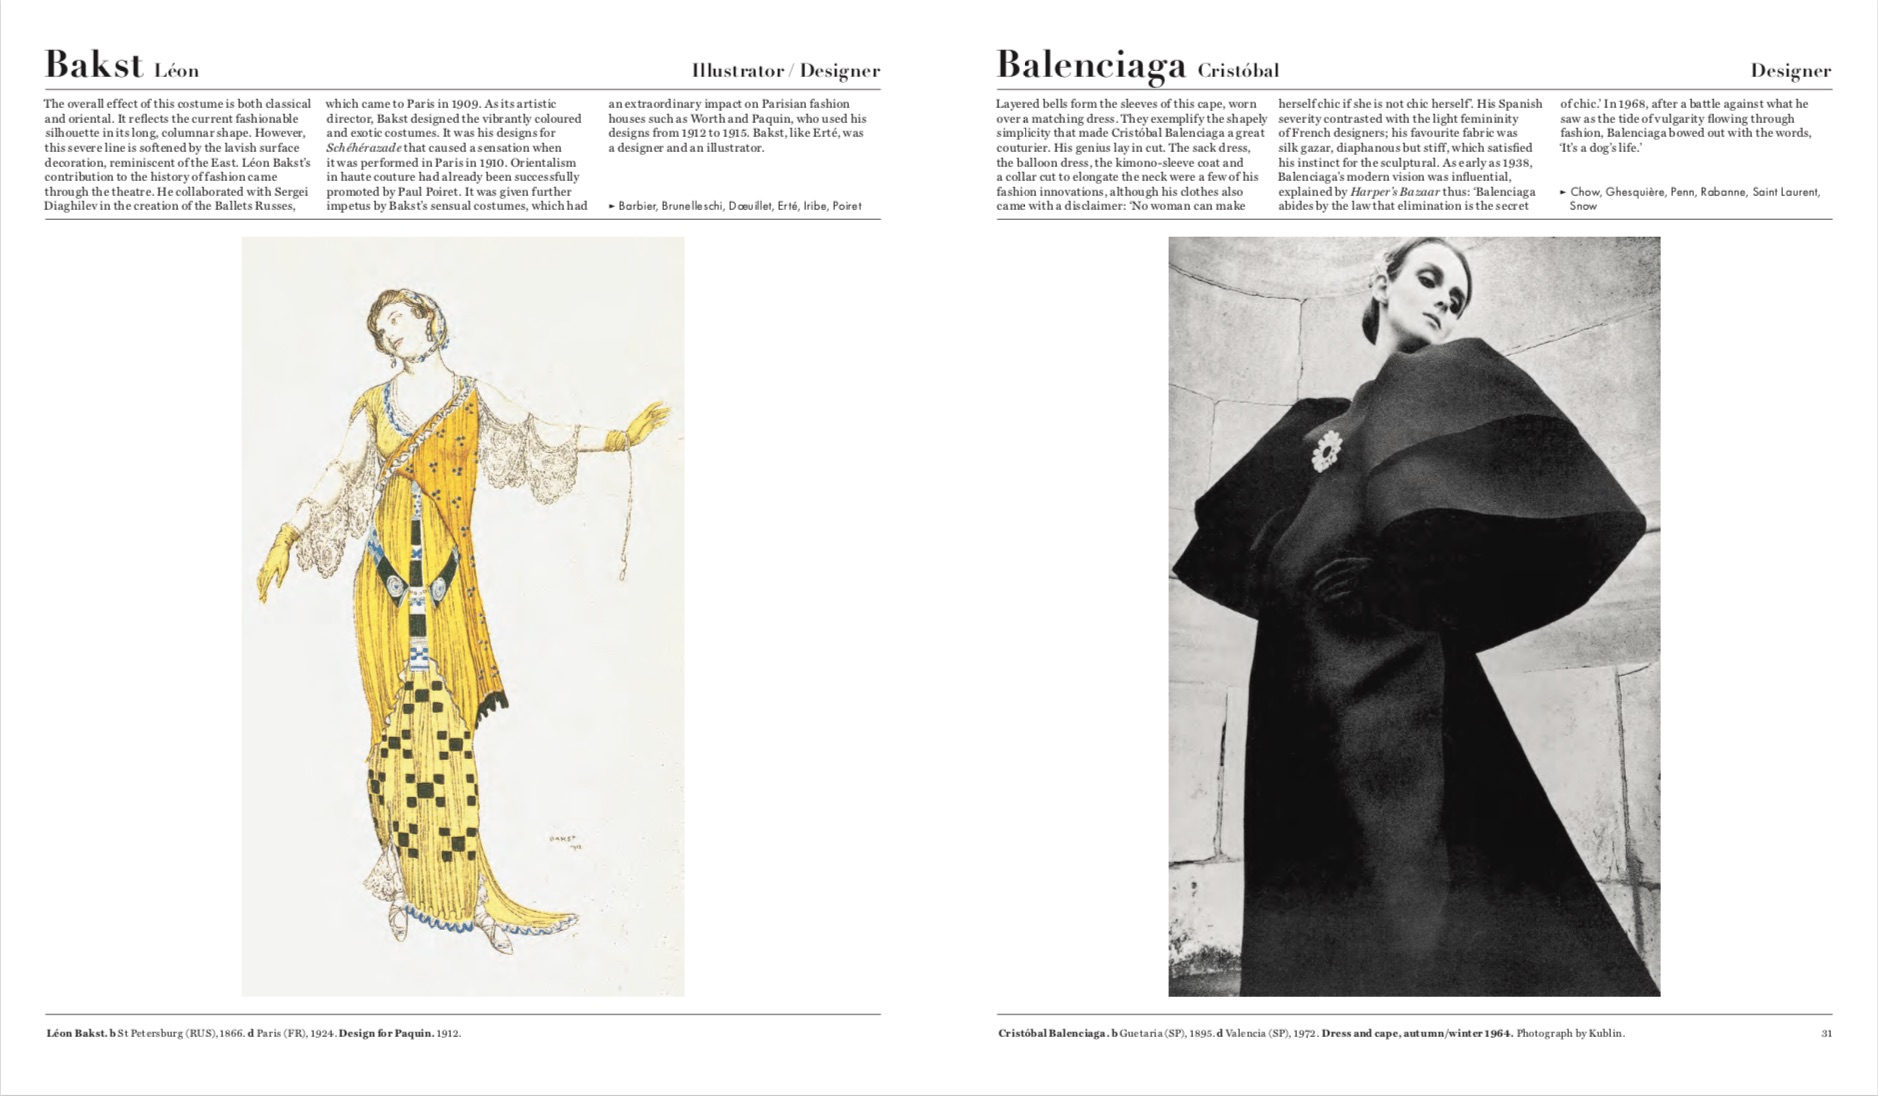 By Caroline Kinneberg, Laura Gardner and Phaidon editors from The Fashion Book copyright Phaidon 2016